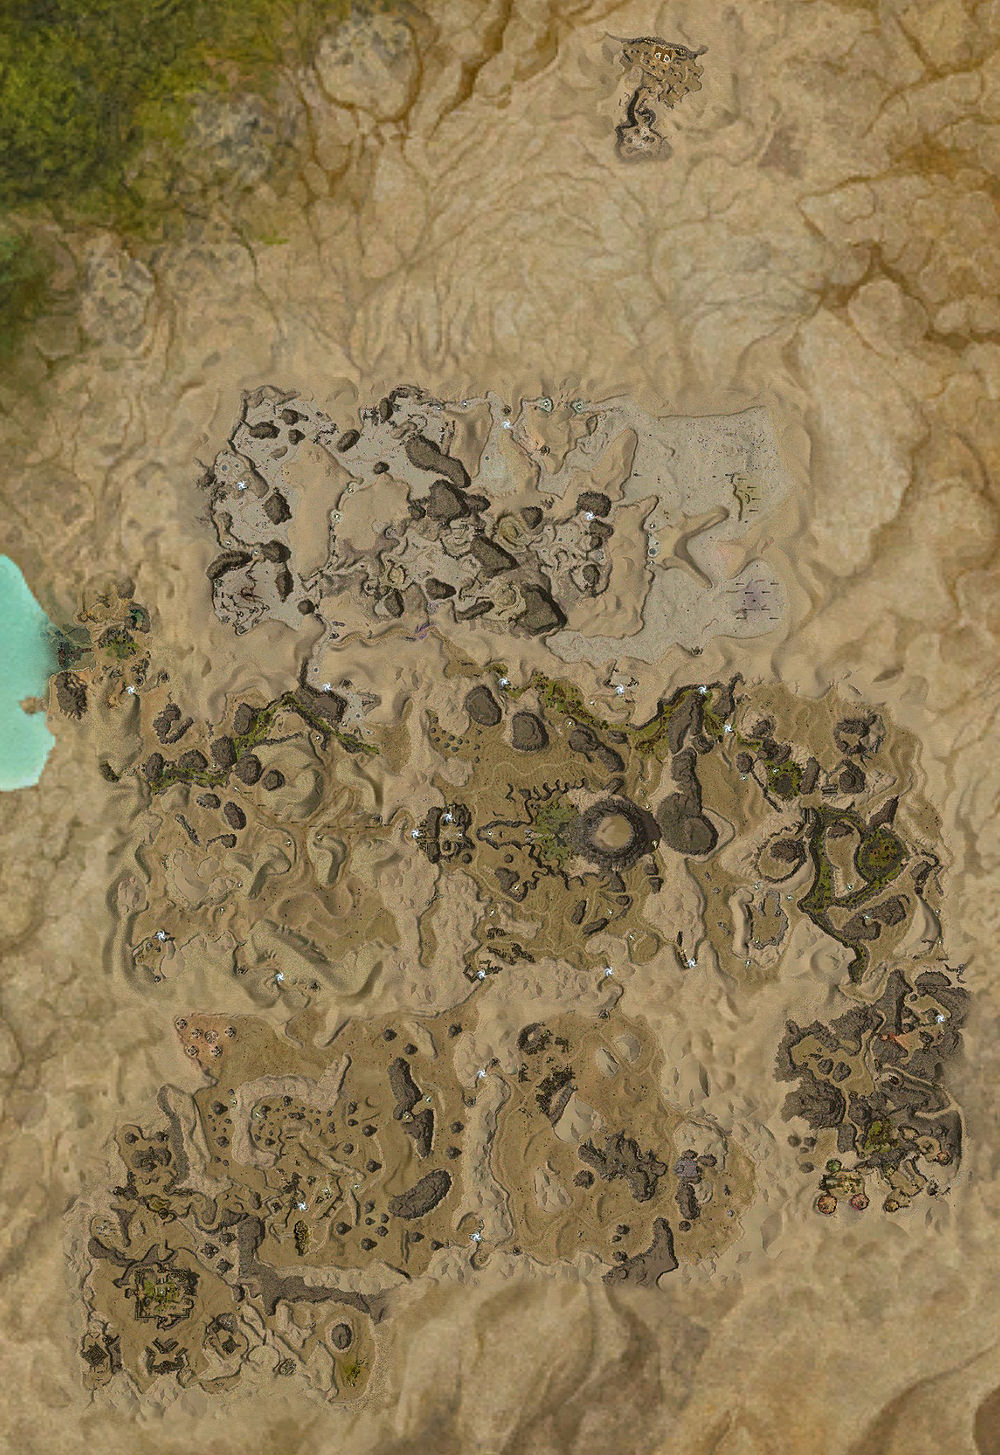 how to draw a desert on a map